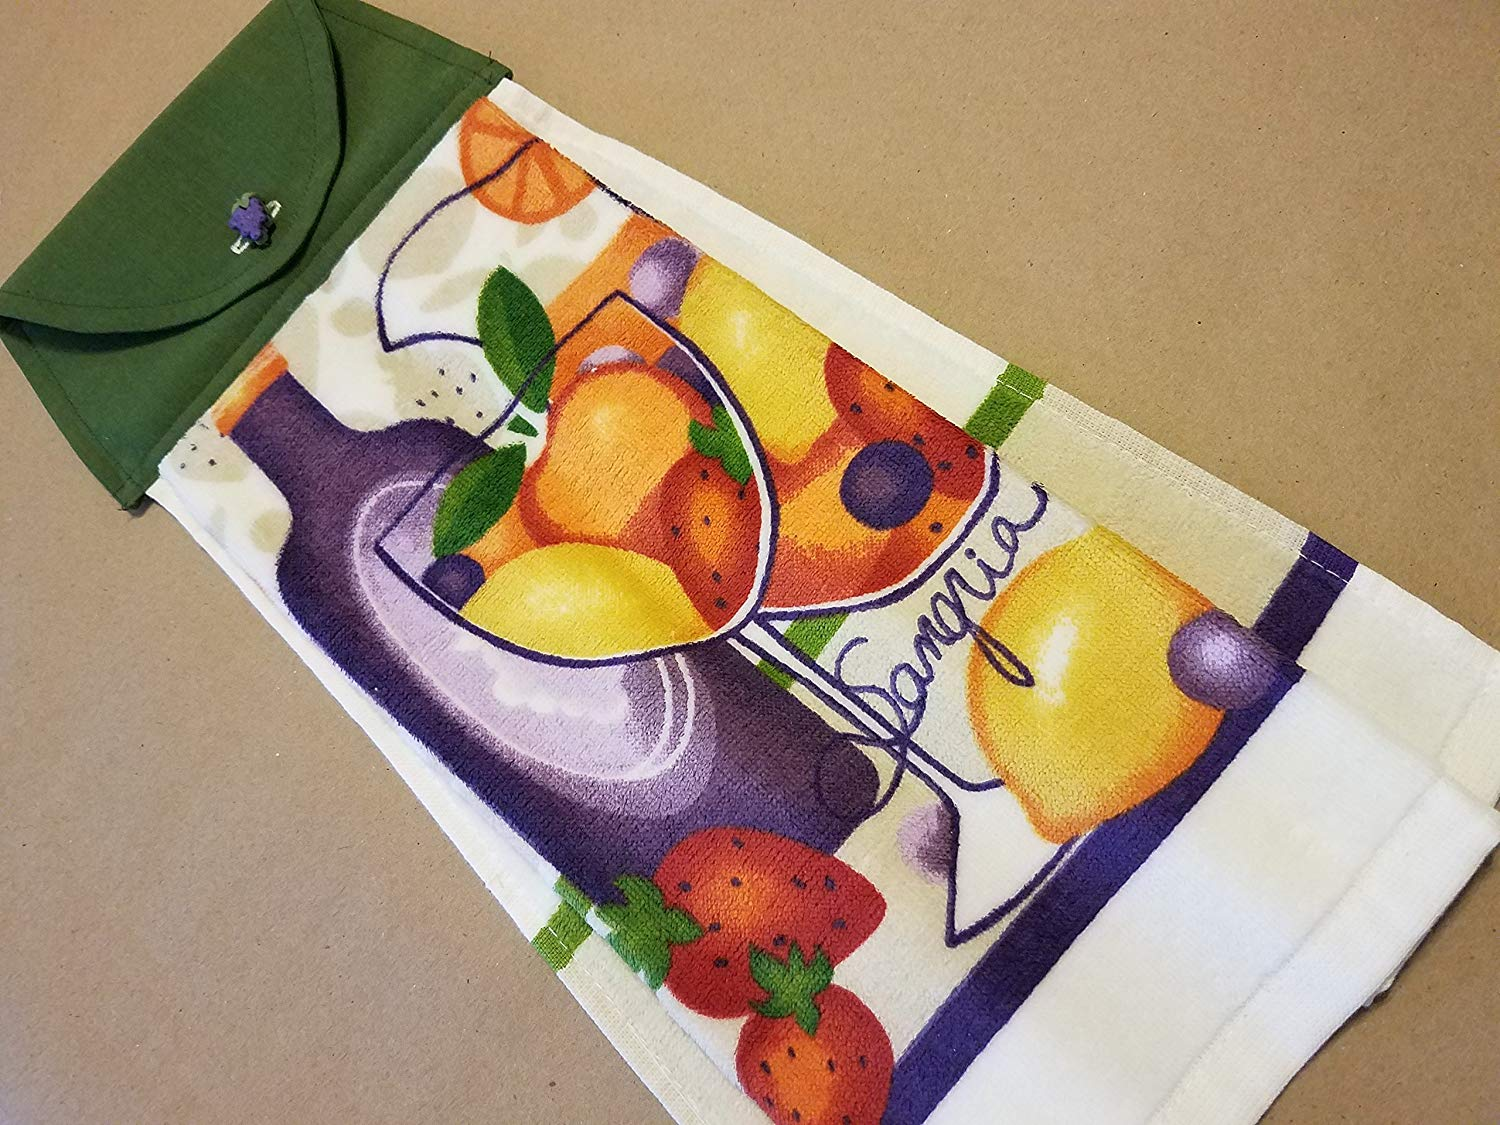 Sangria Hanging Kitchen Towel, Wine and Fruit Button Top Dish Towel, Gifts Under 20, Hostess GIft, Housewarming Gift, Summer Kitchen Linens, Wine Lovers, Wino Gifts